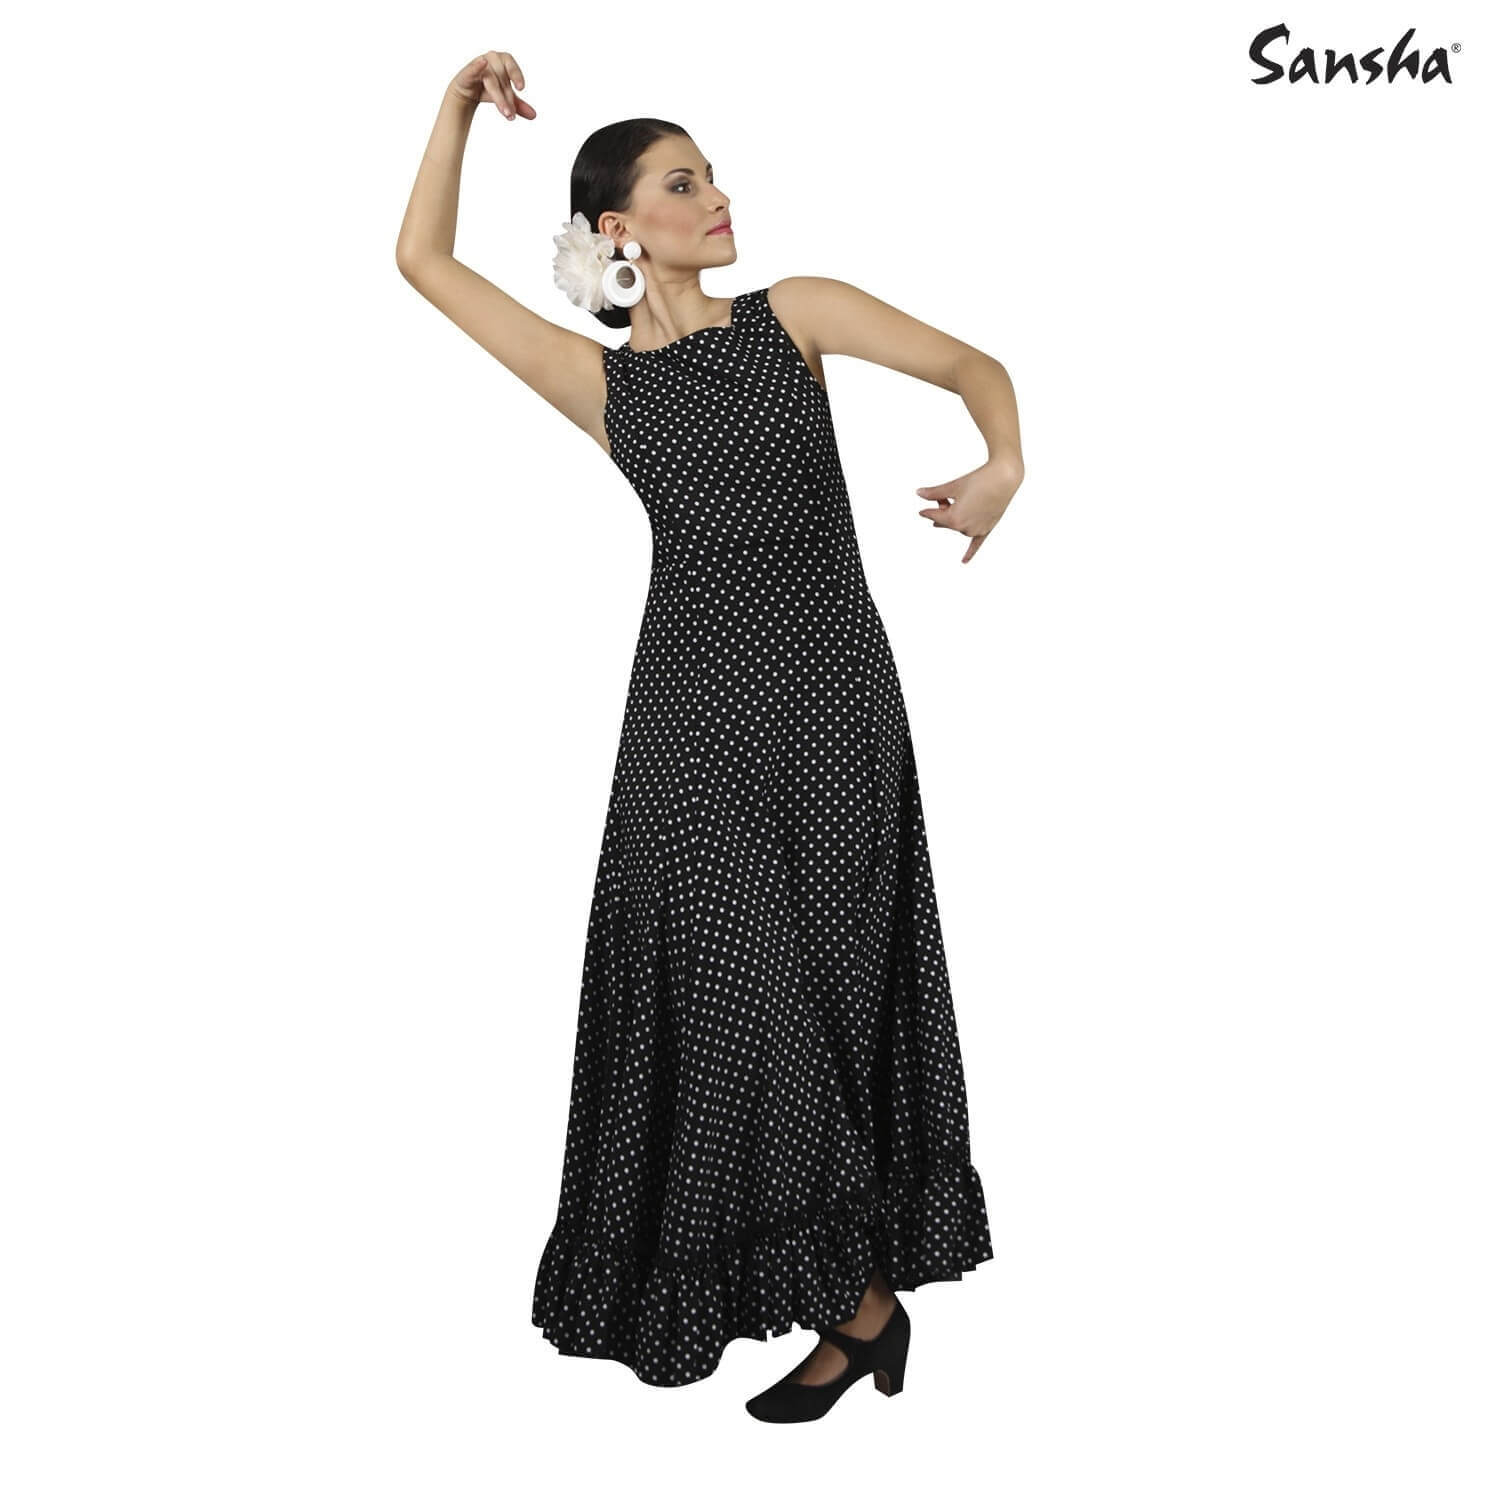 Sansha Sleeveless Flamenco Dress With Ruffles